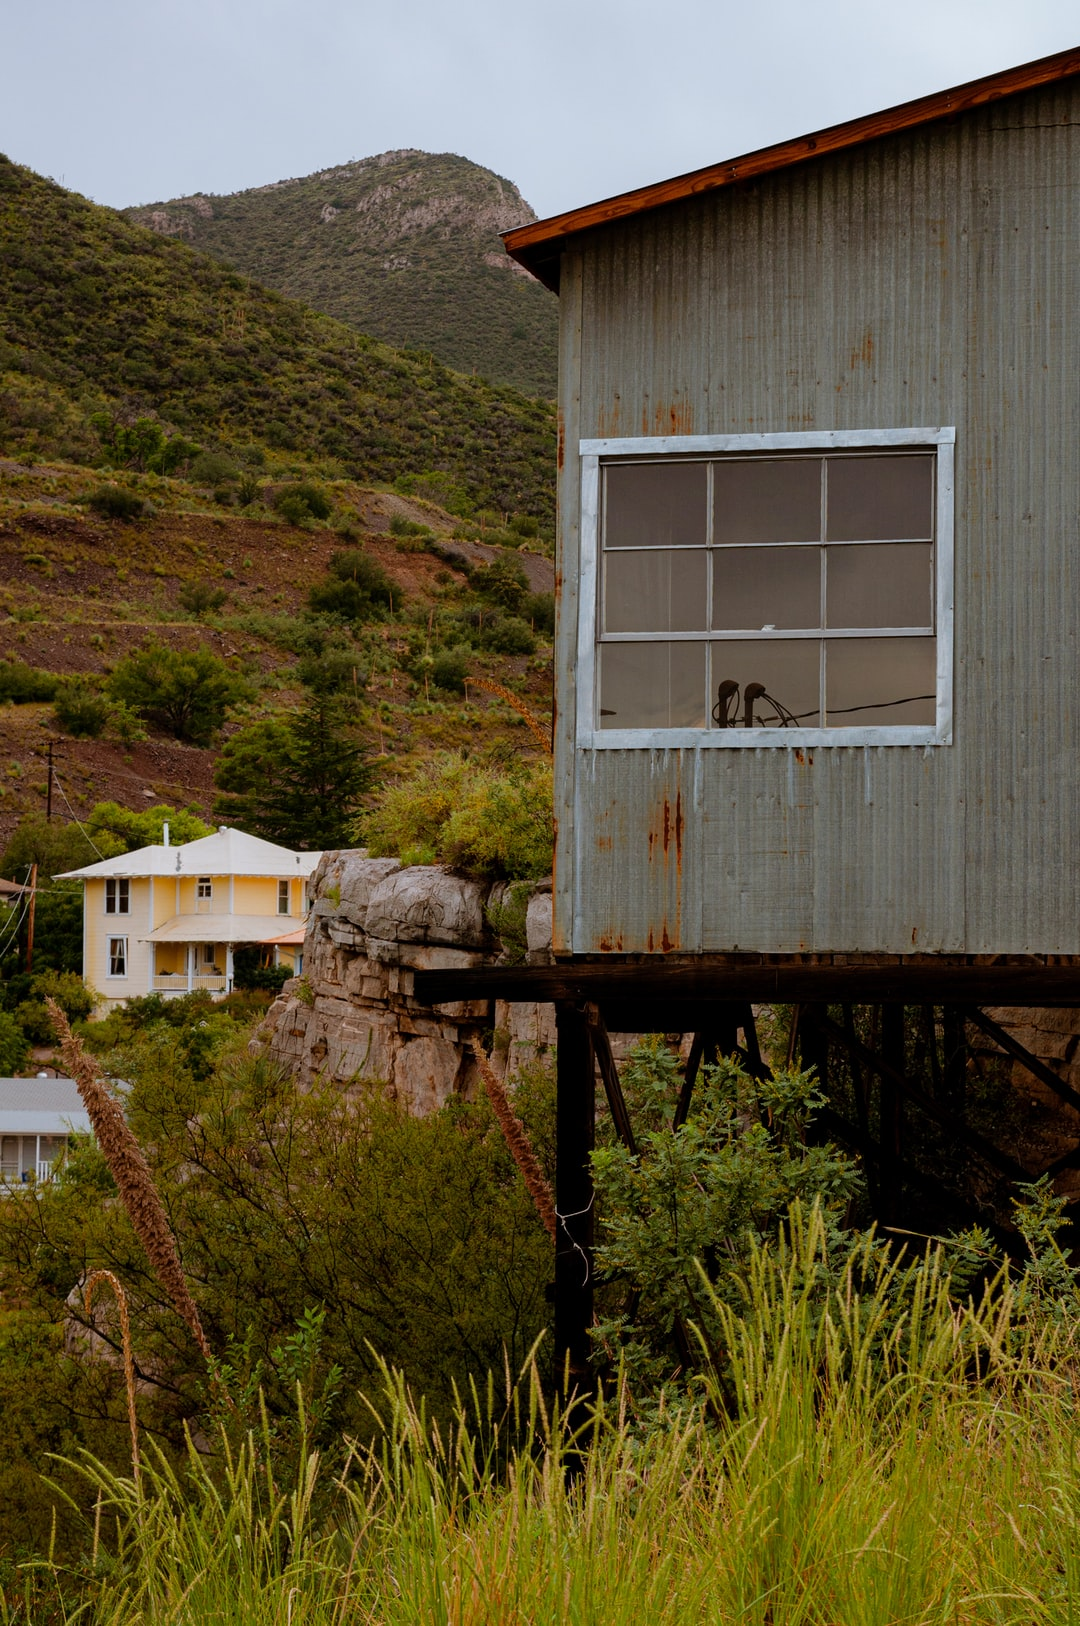 Rusty Tin Texture with Mountains in Background | Bisbee AZ